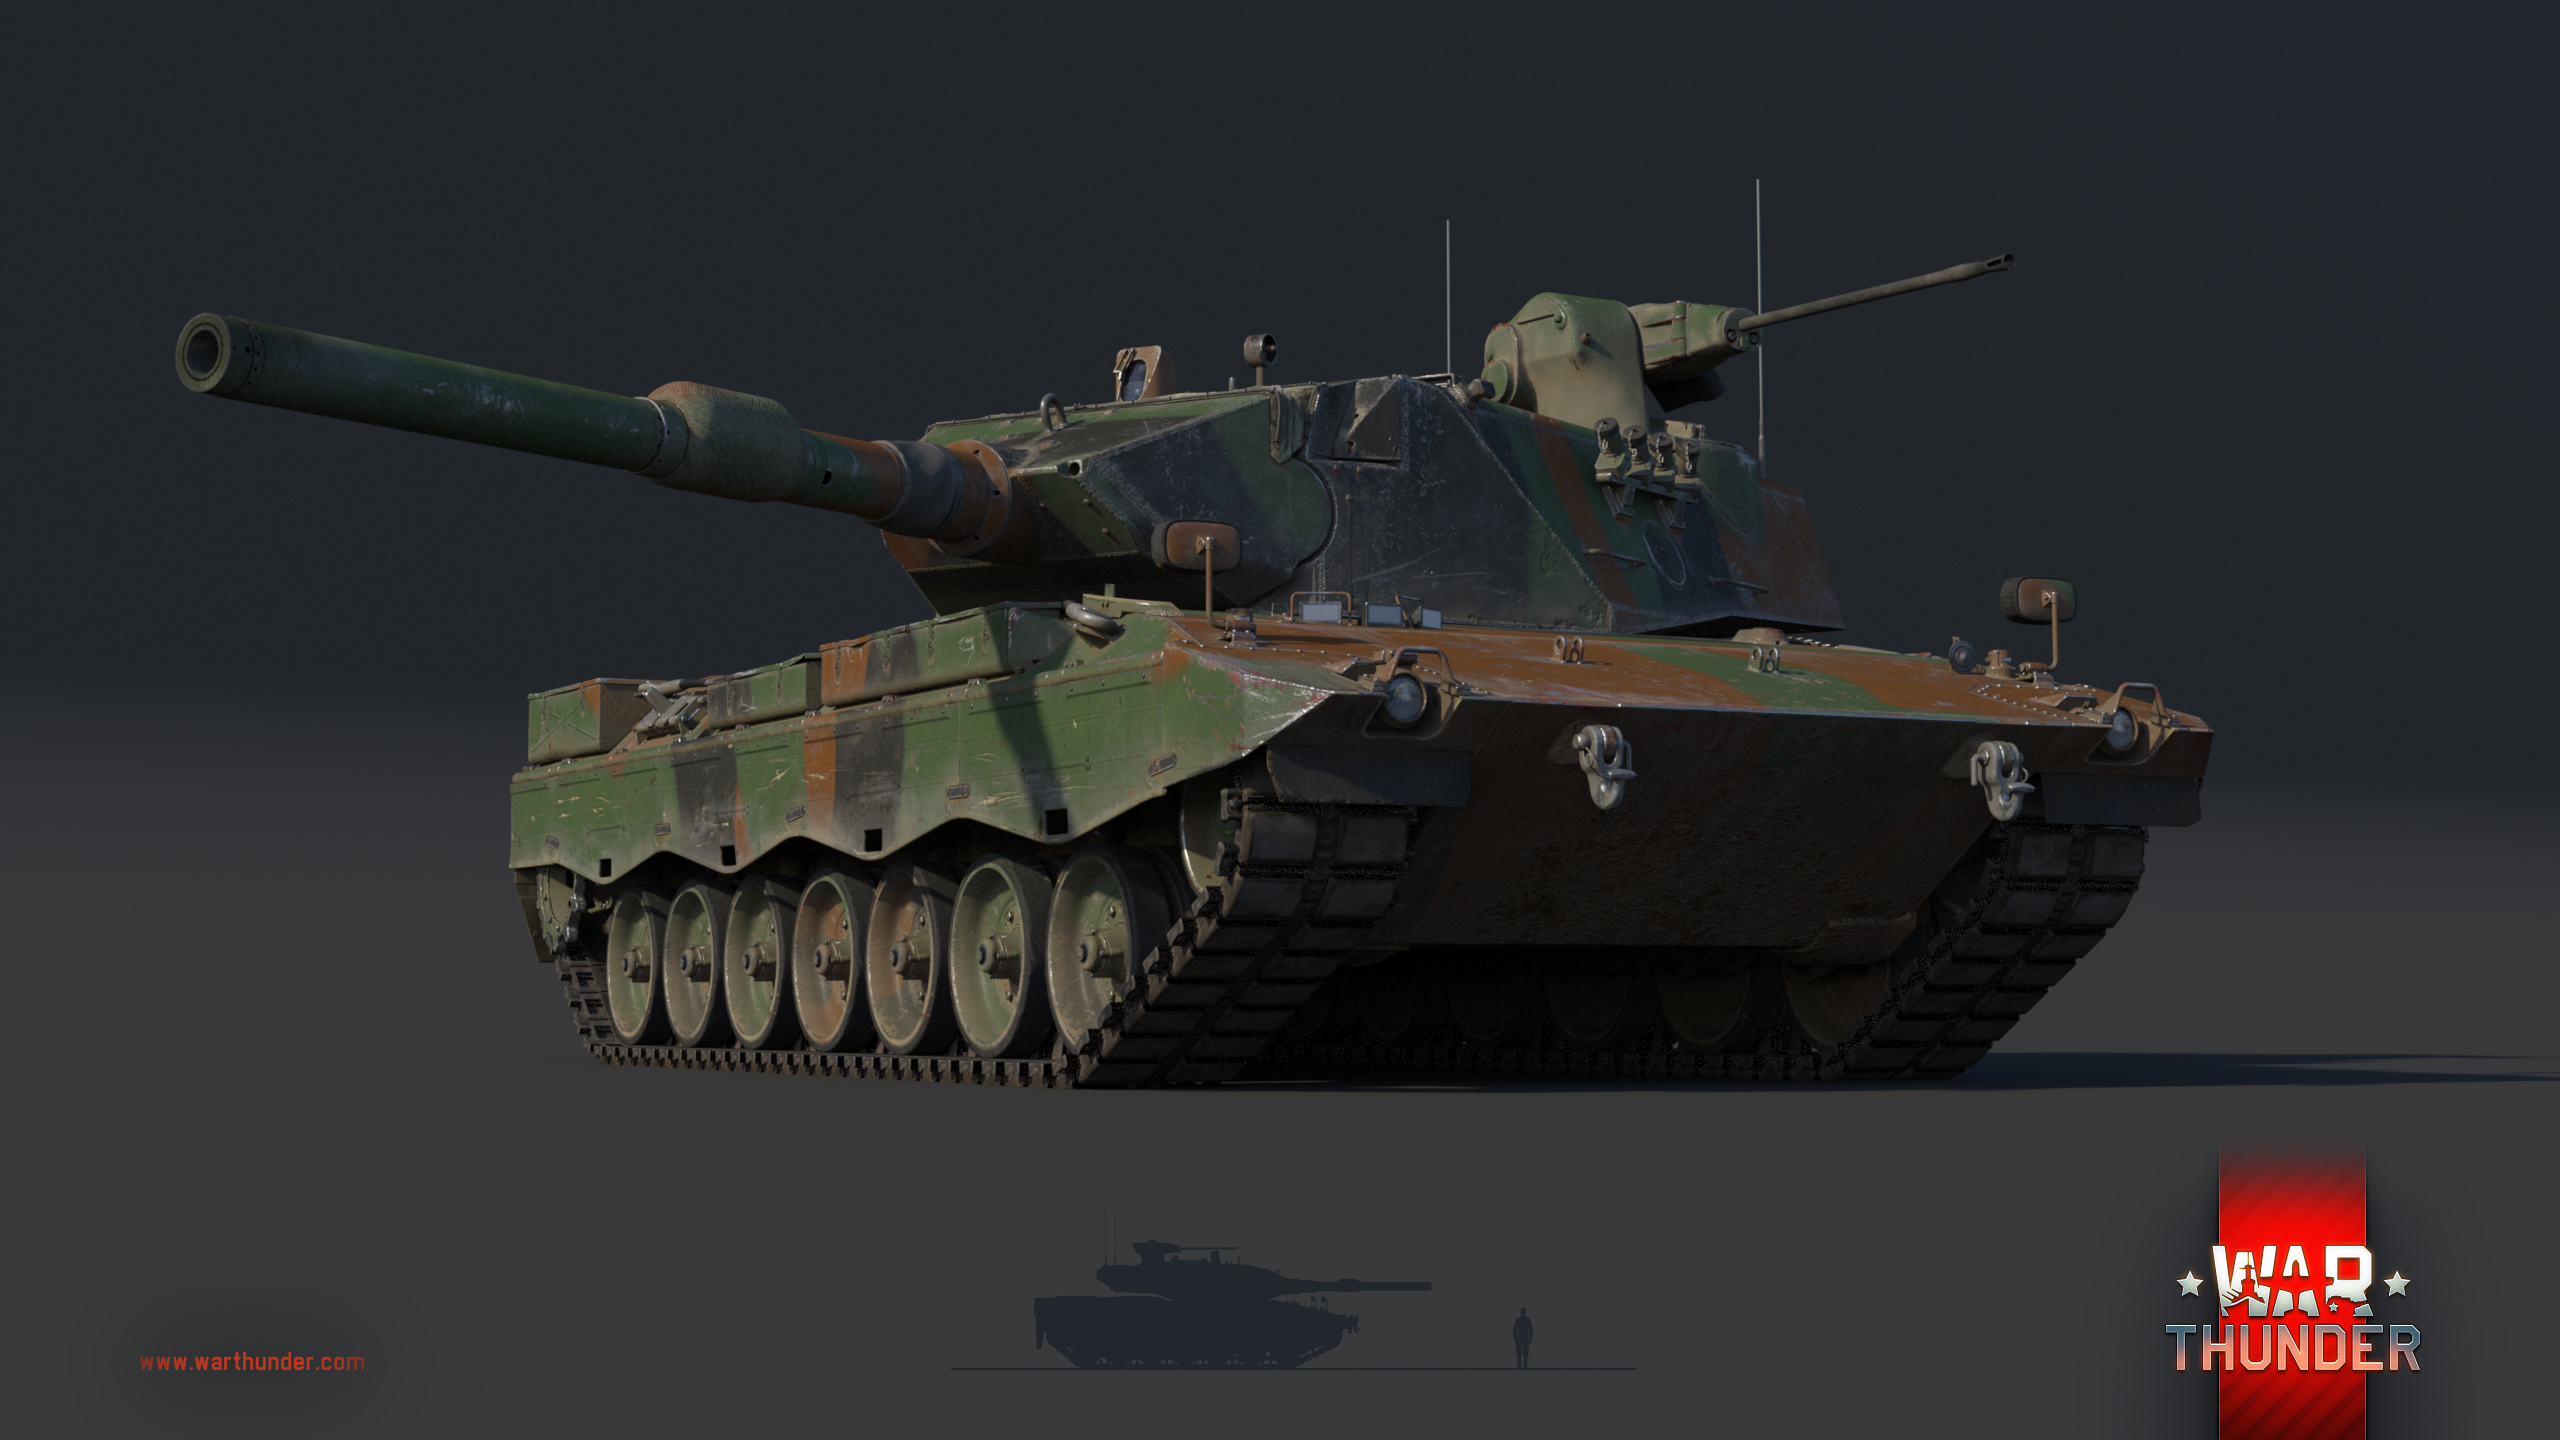 war thunder how to use the guns on tank